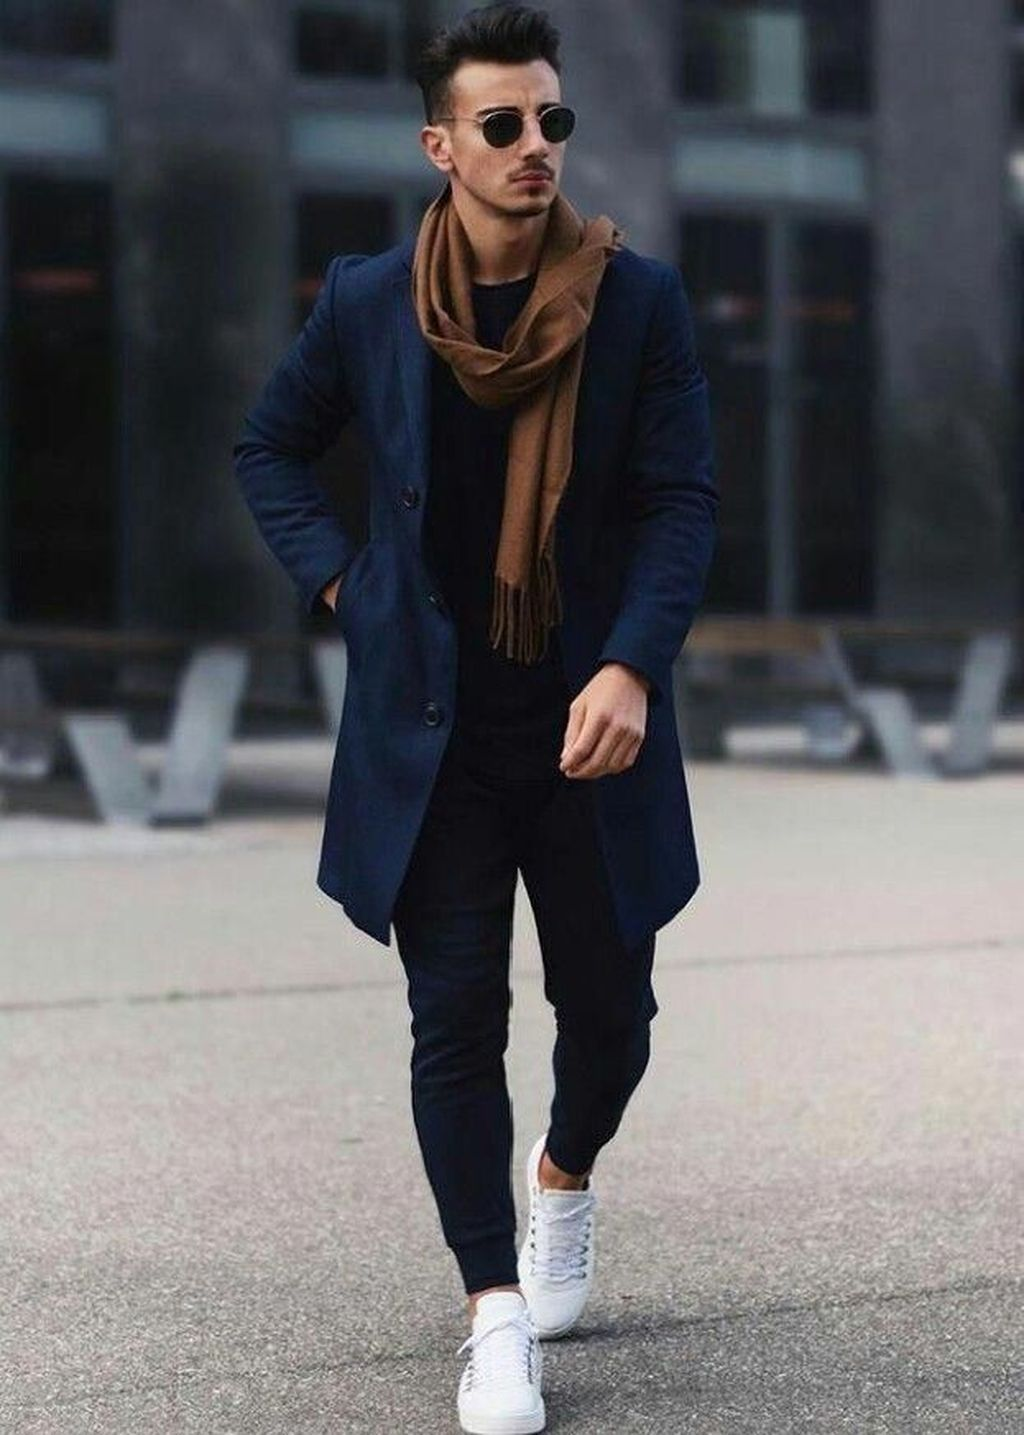 50 Elegant Winter Man Outfit With Scarf Ideas To Warm Your Body is part of Mens winter fashion - The scarf is an ideal way to keep both yourself warm as well as stay fashionable during the cold winter […]